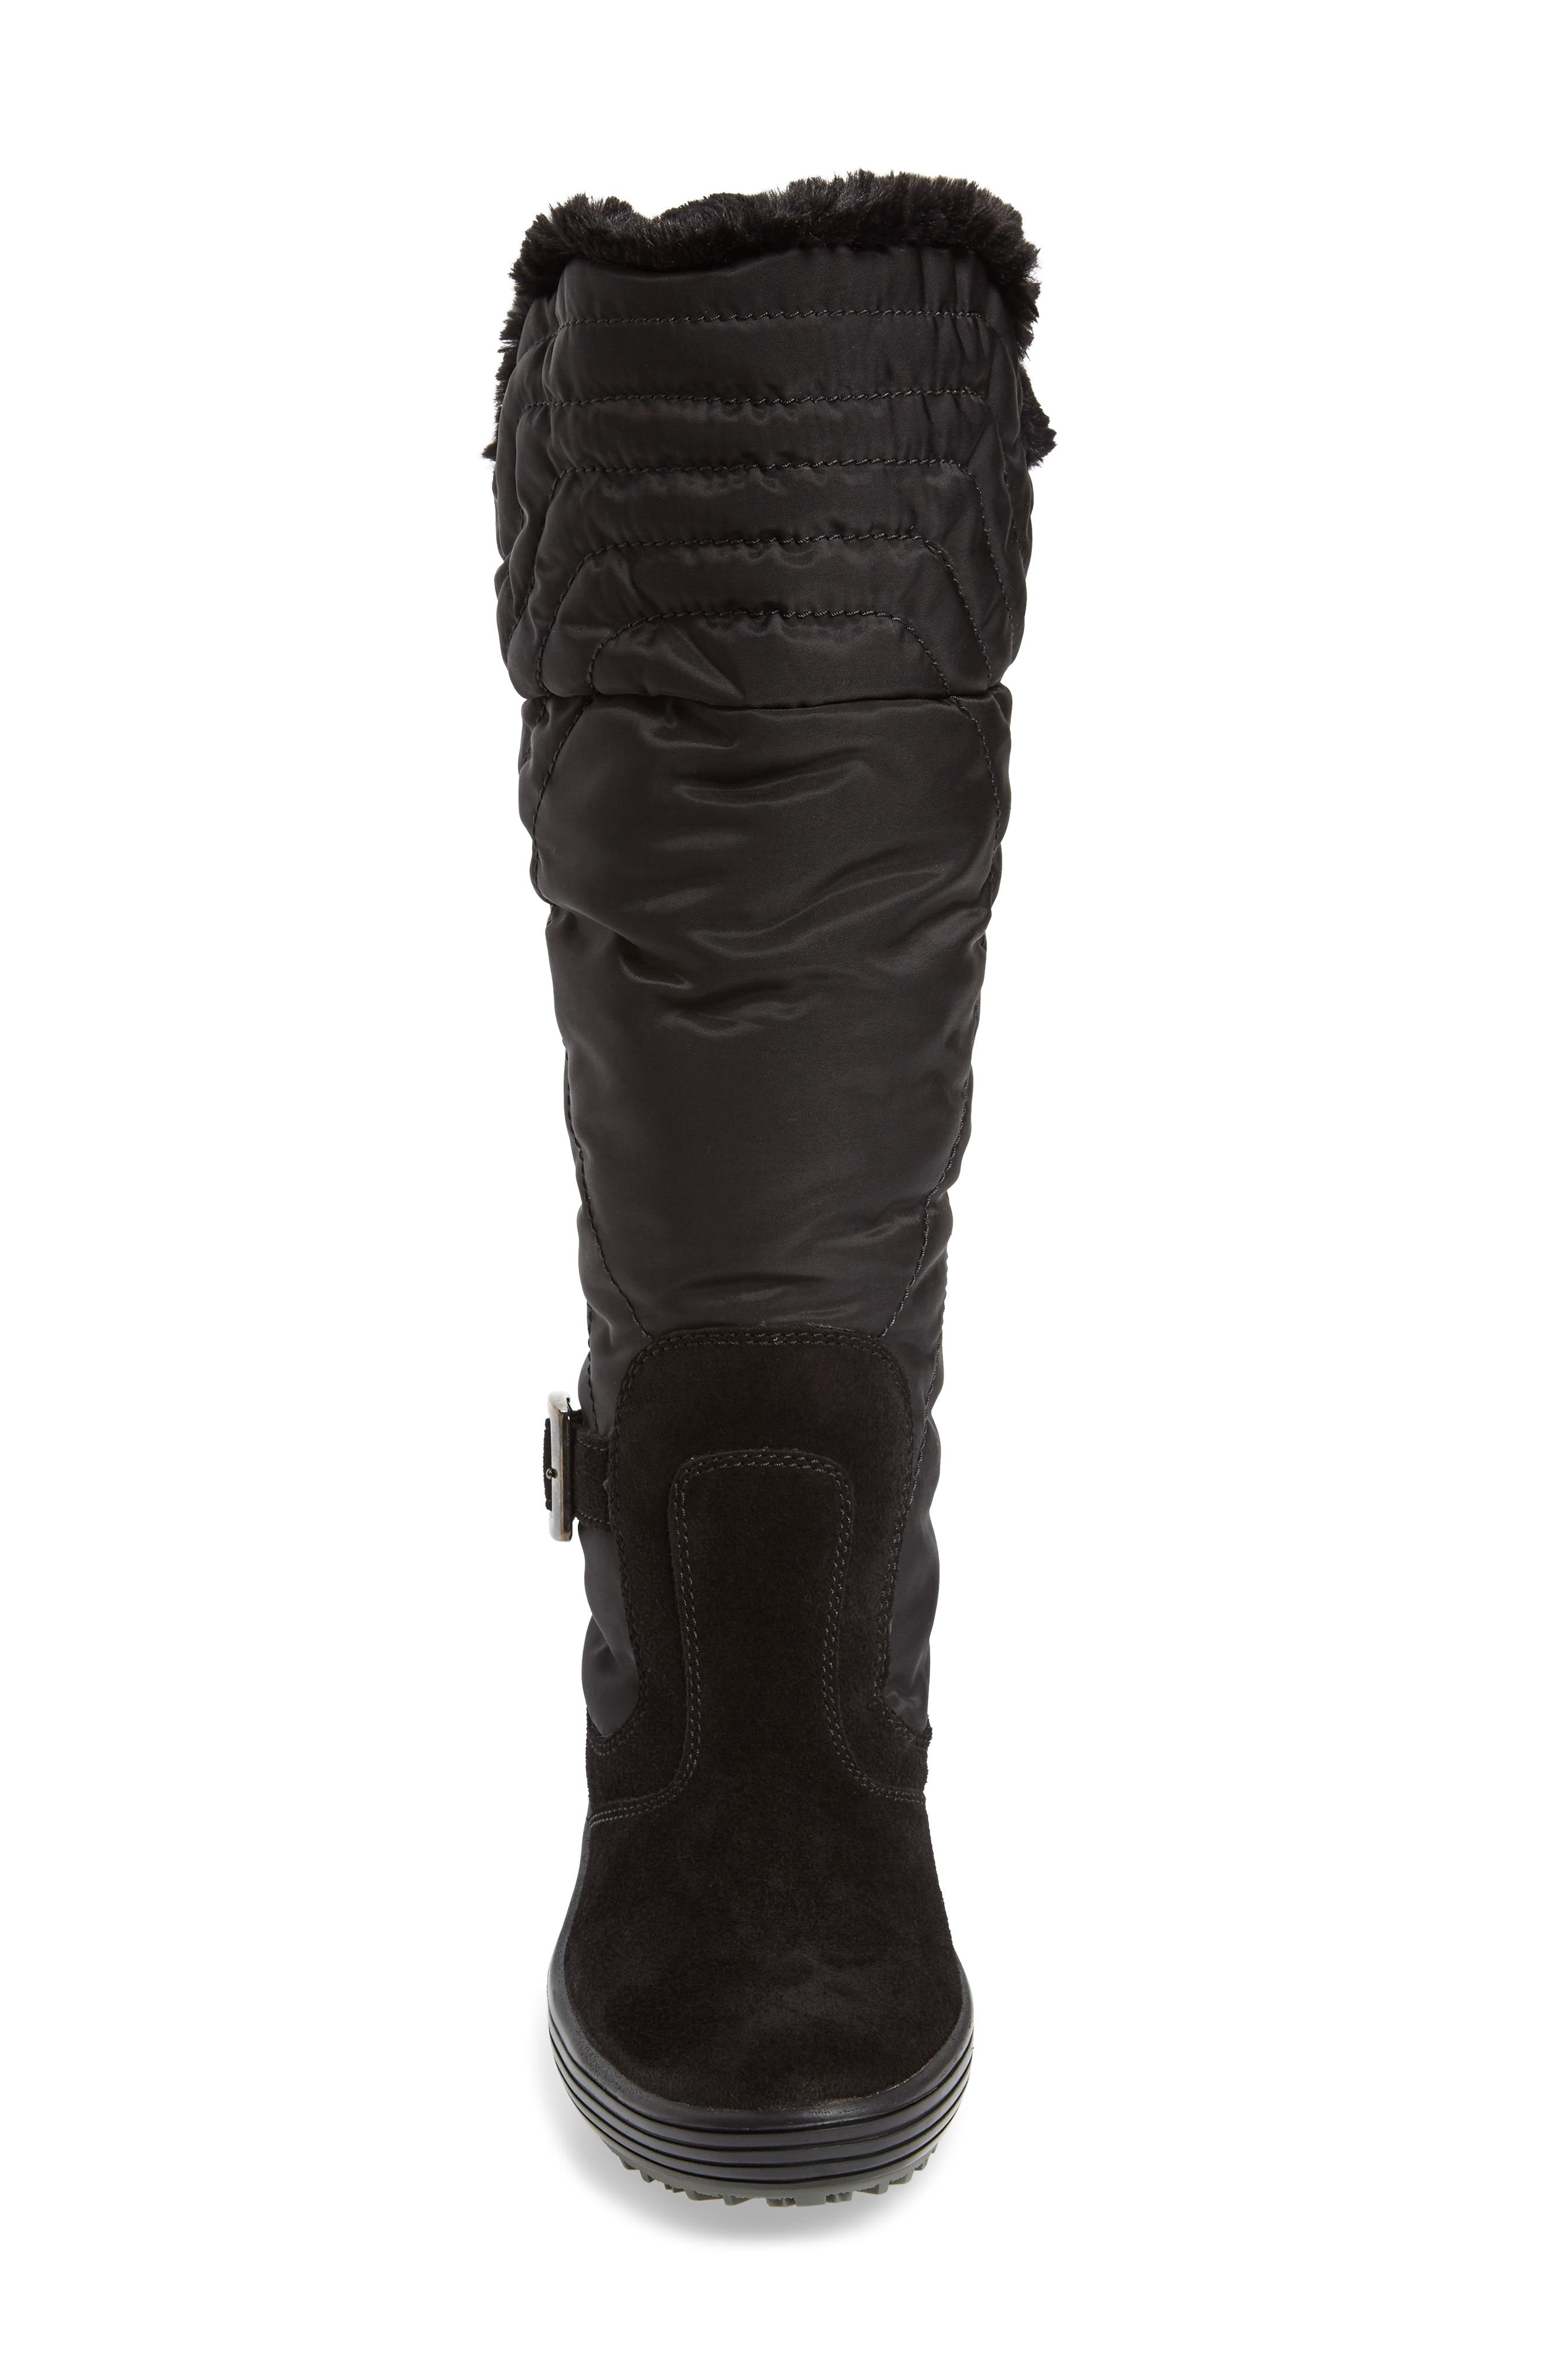 Natasha Faux Fur Lined Waterproof Boot,                             Alternate thumbnail 4, color,                             001